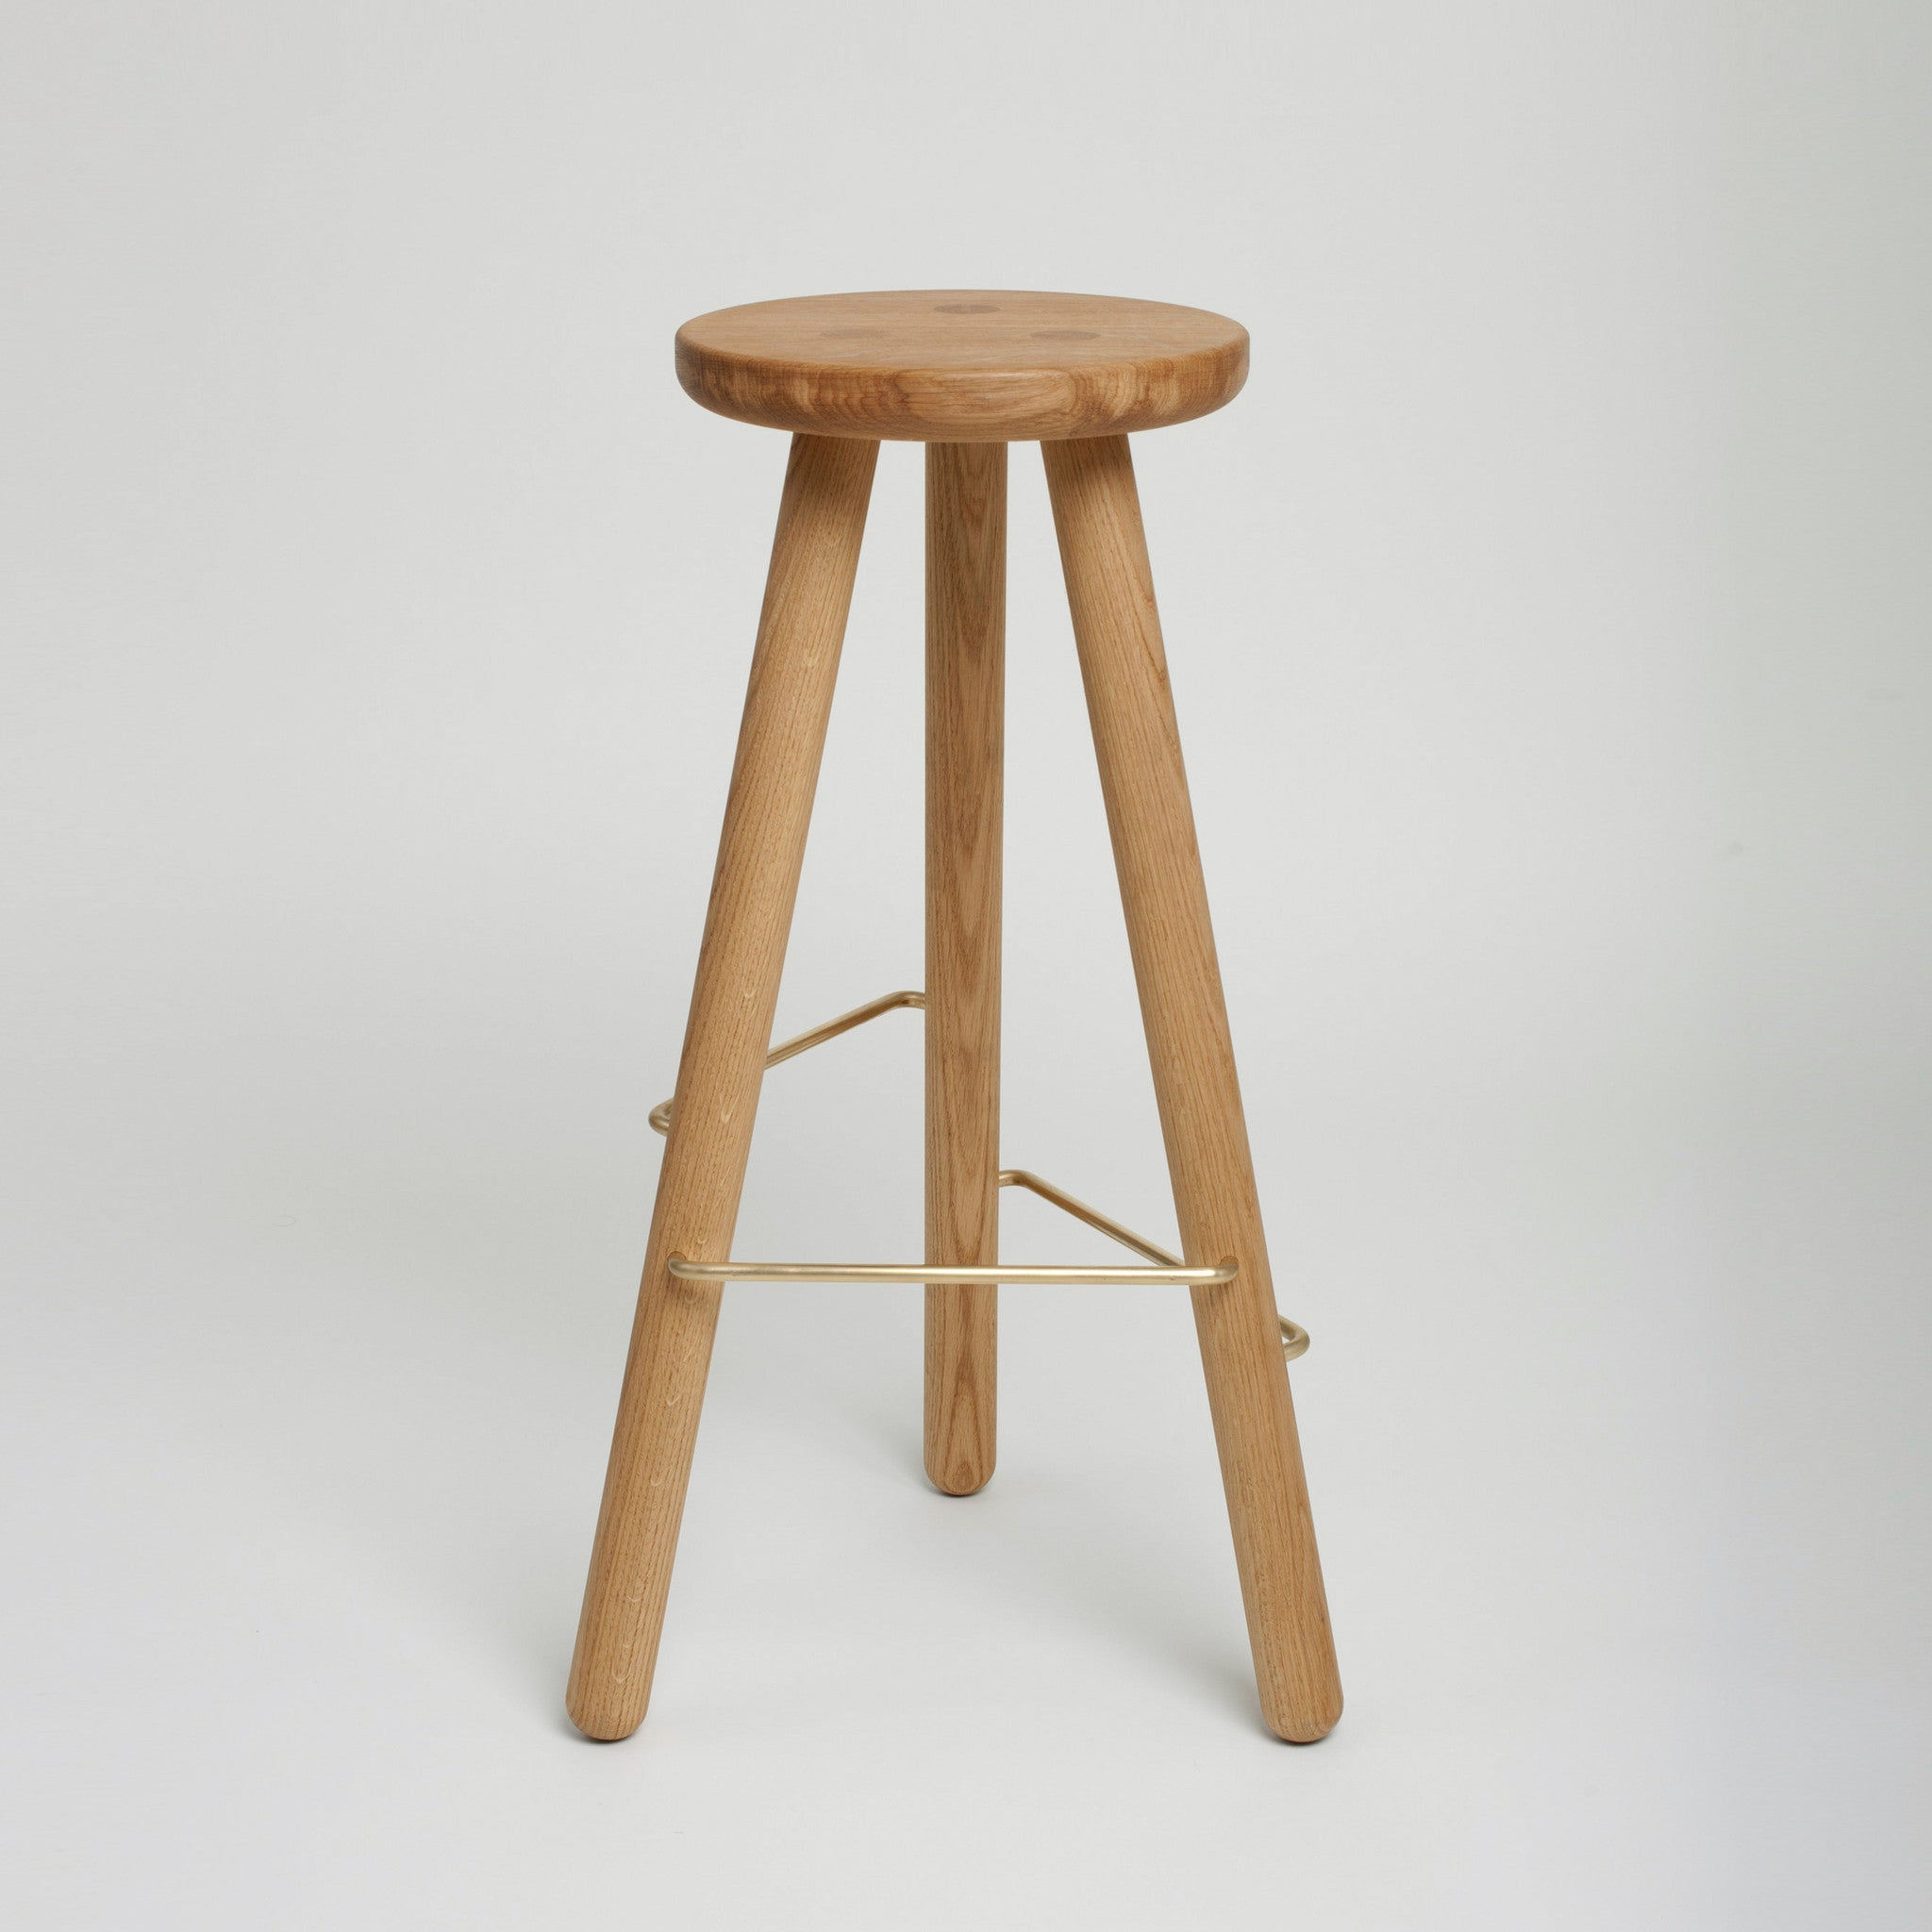 Bar Stool One Oak Another Country : another country bar stool one oak natural 0013180352c 7a99 460f acac b772c857cf3f from www.anothercountry.com size 2048 x 2048 jpeg 219kB